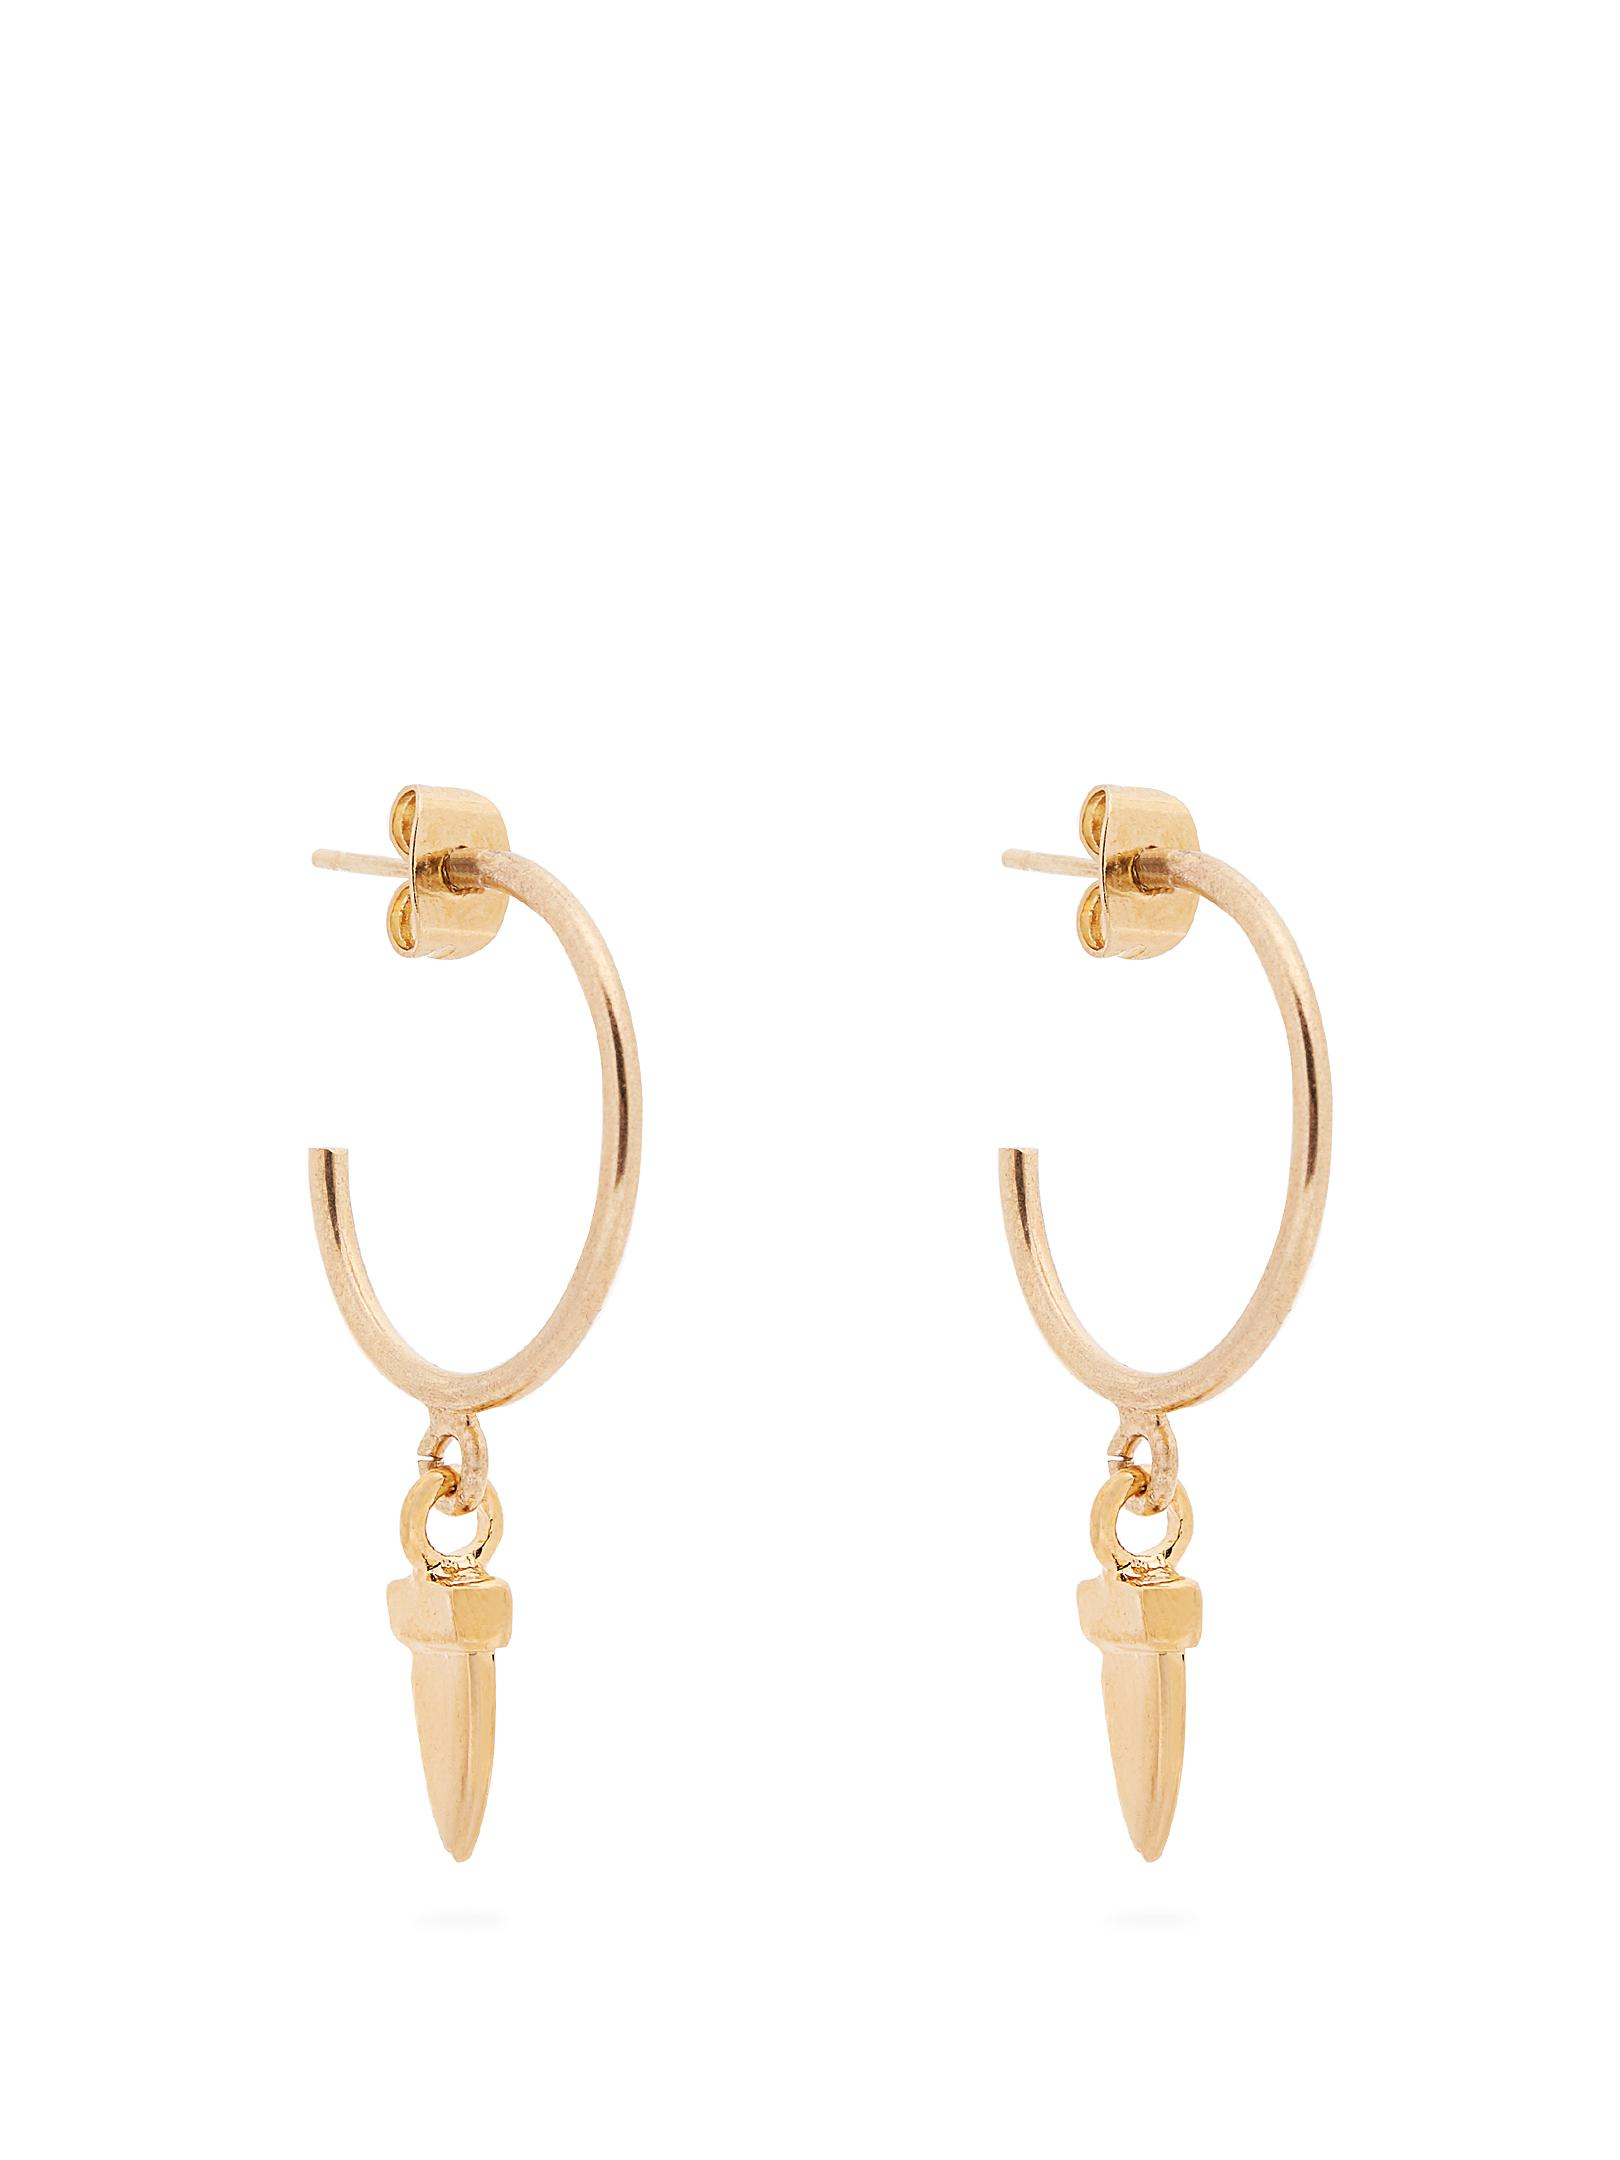 Its All Right earrings - White Isabel Marant A1DIefI5Rx